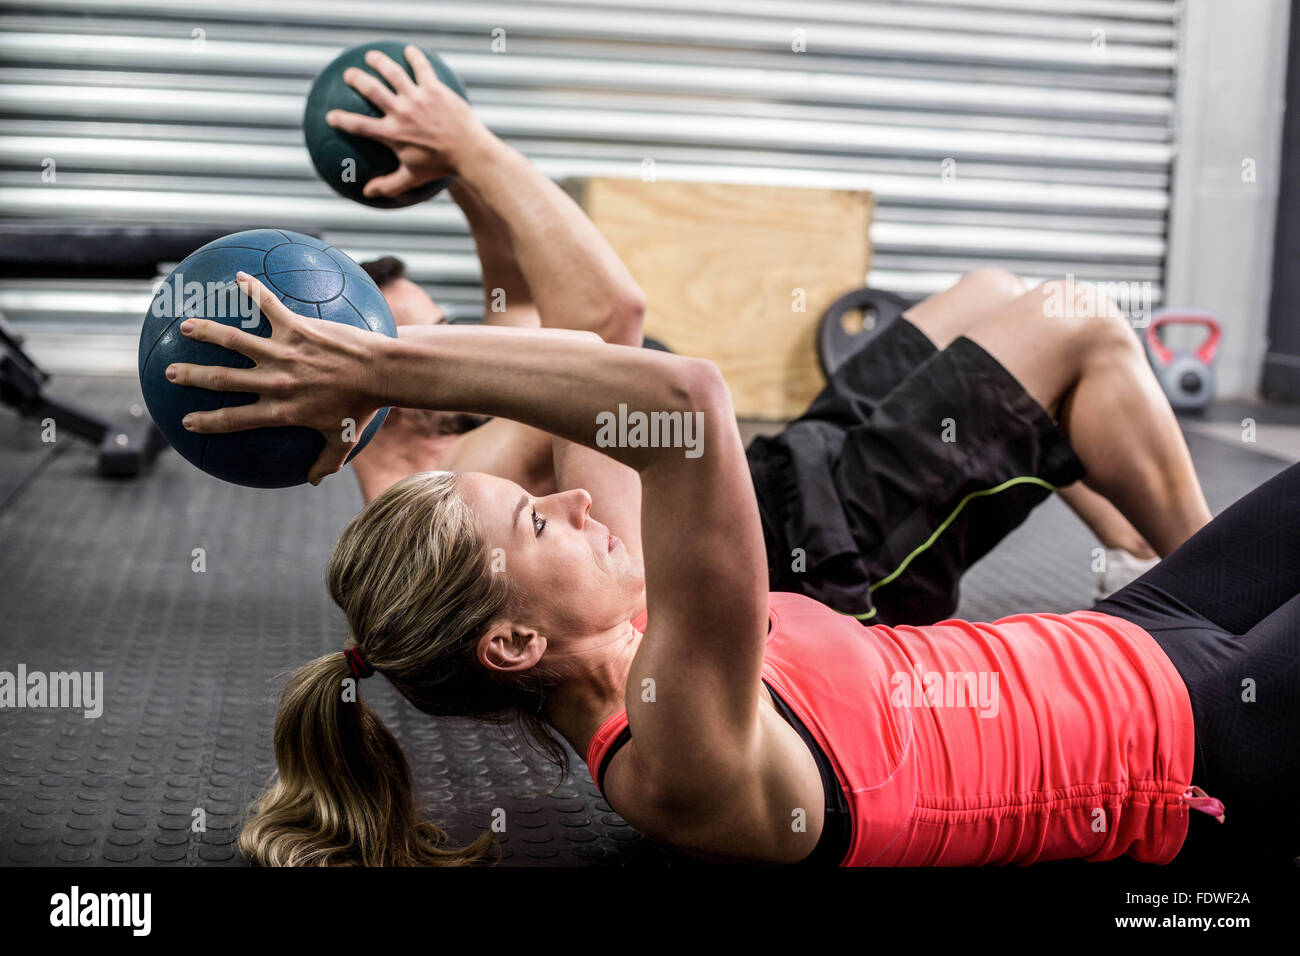 Monter couple exercice balle abdominale Photo Stock